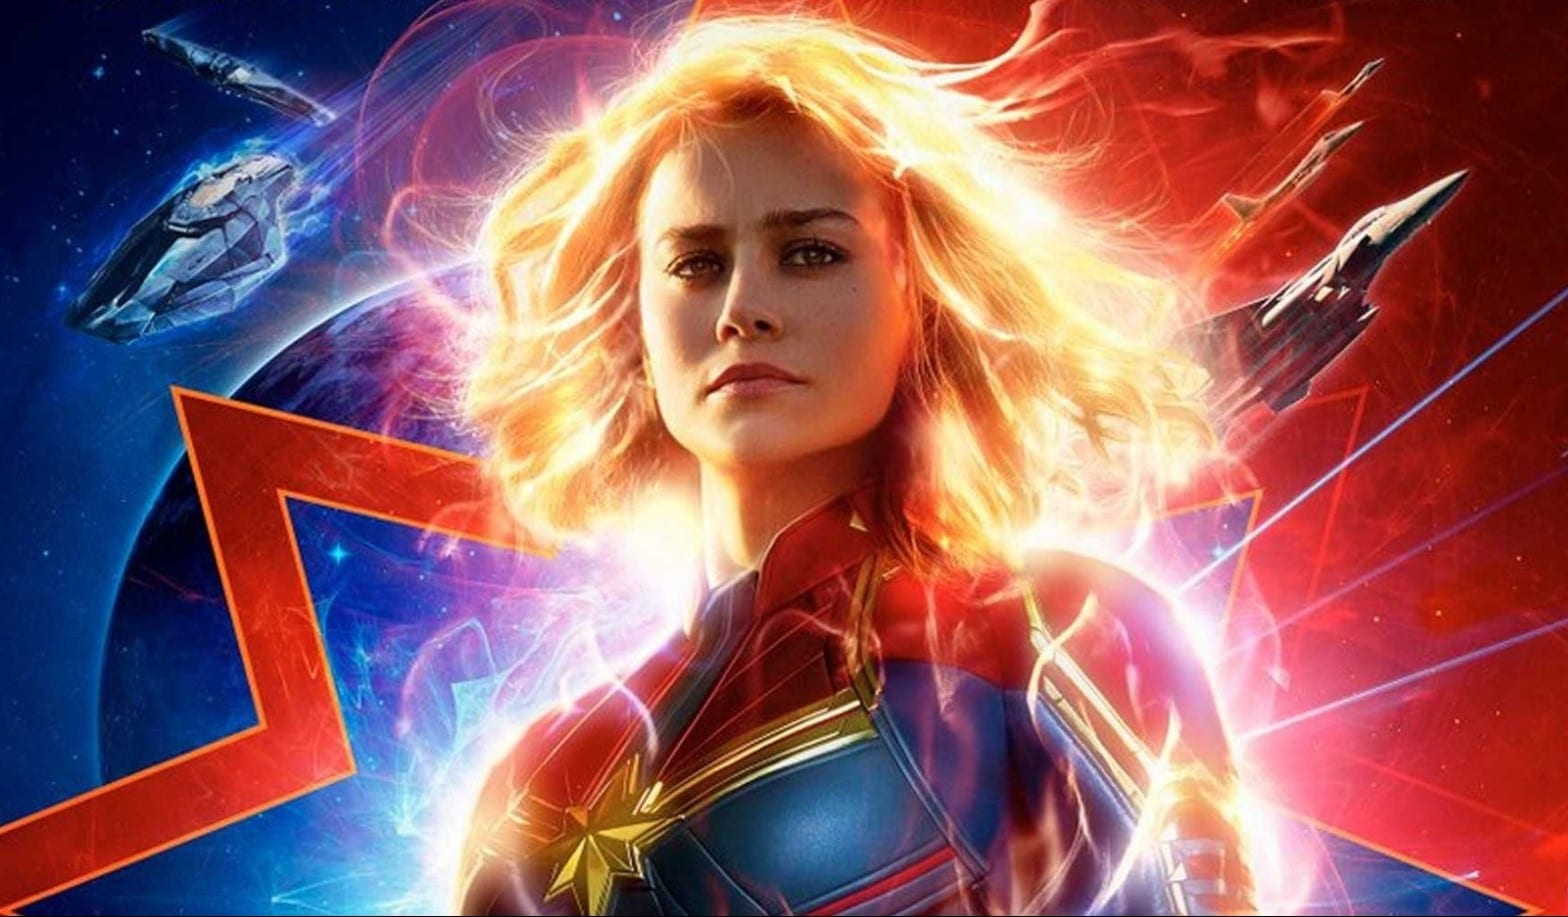 Brie Larson says she turned down Captain Marvel role twice before accepting it